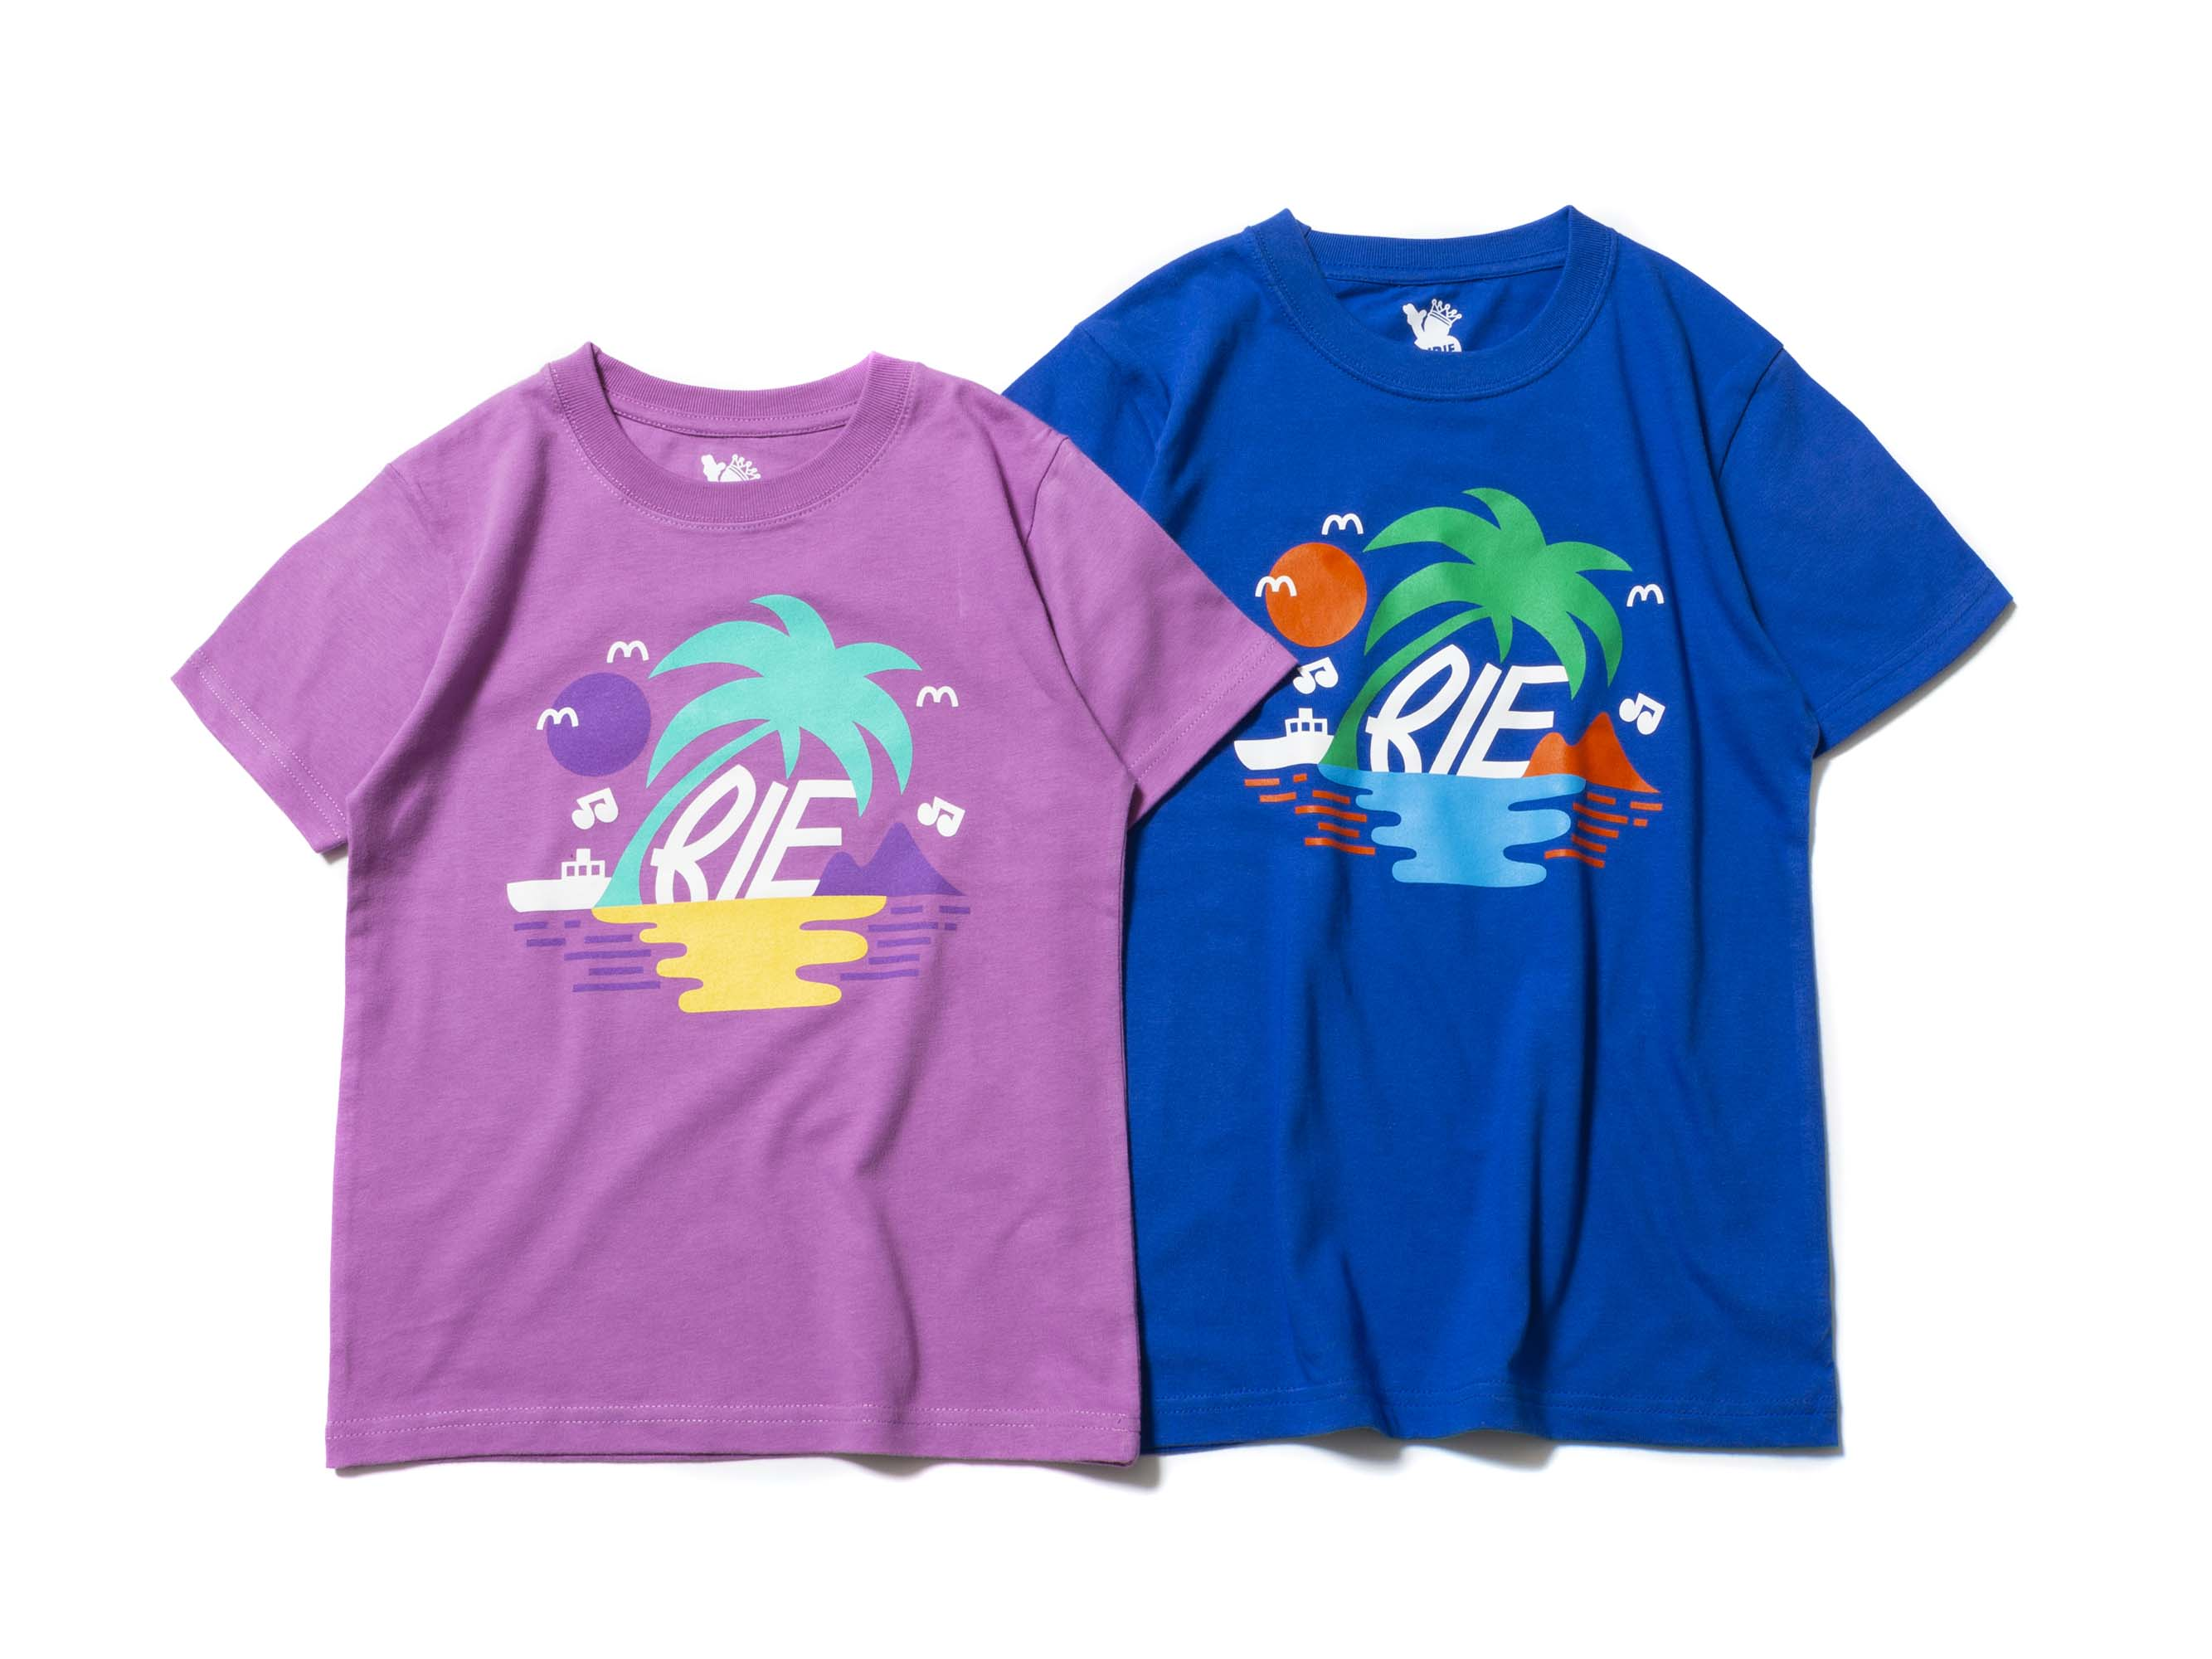 【30% OFF】THE ISLAND KIDS TEE - IRIE KIDS